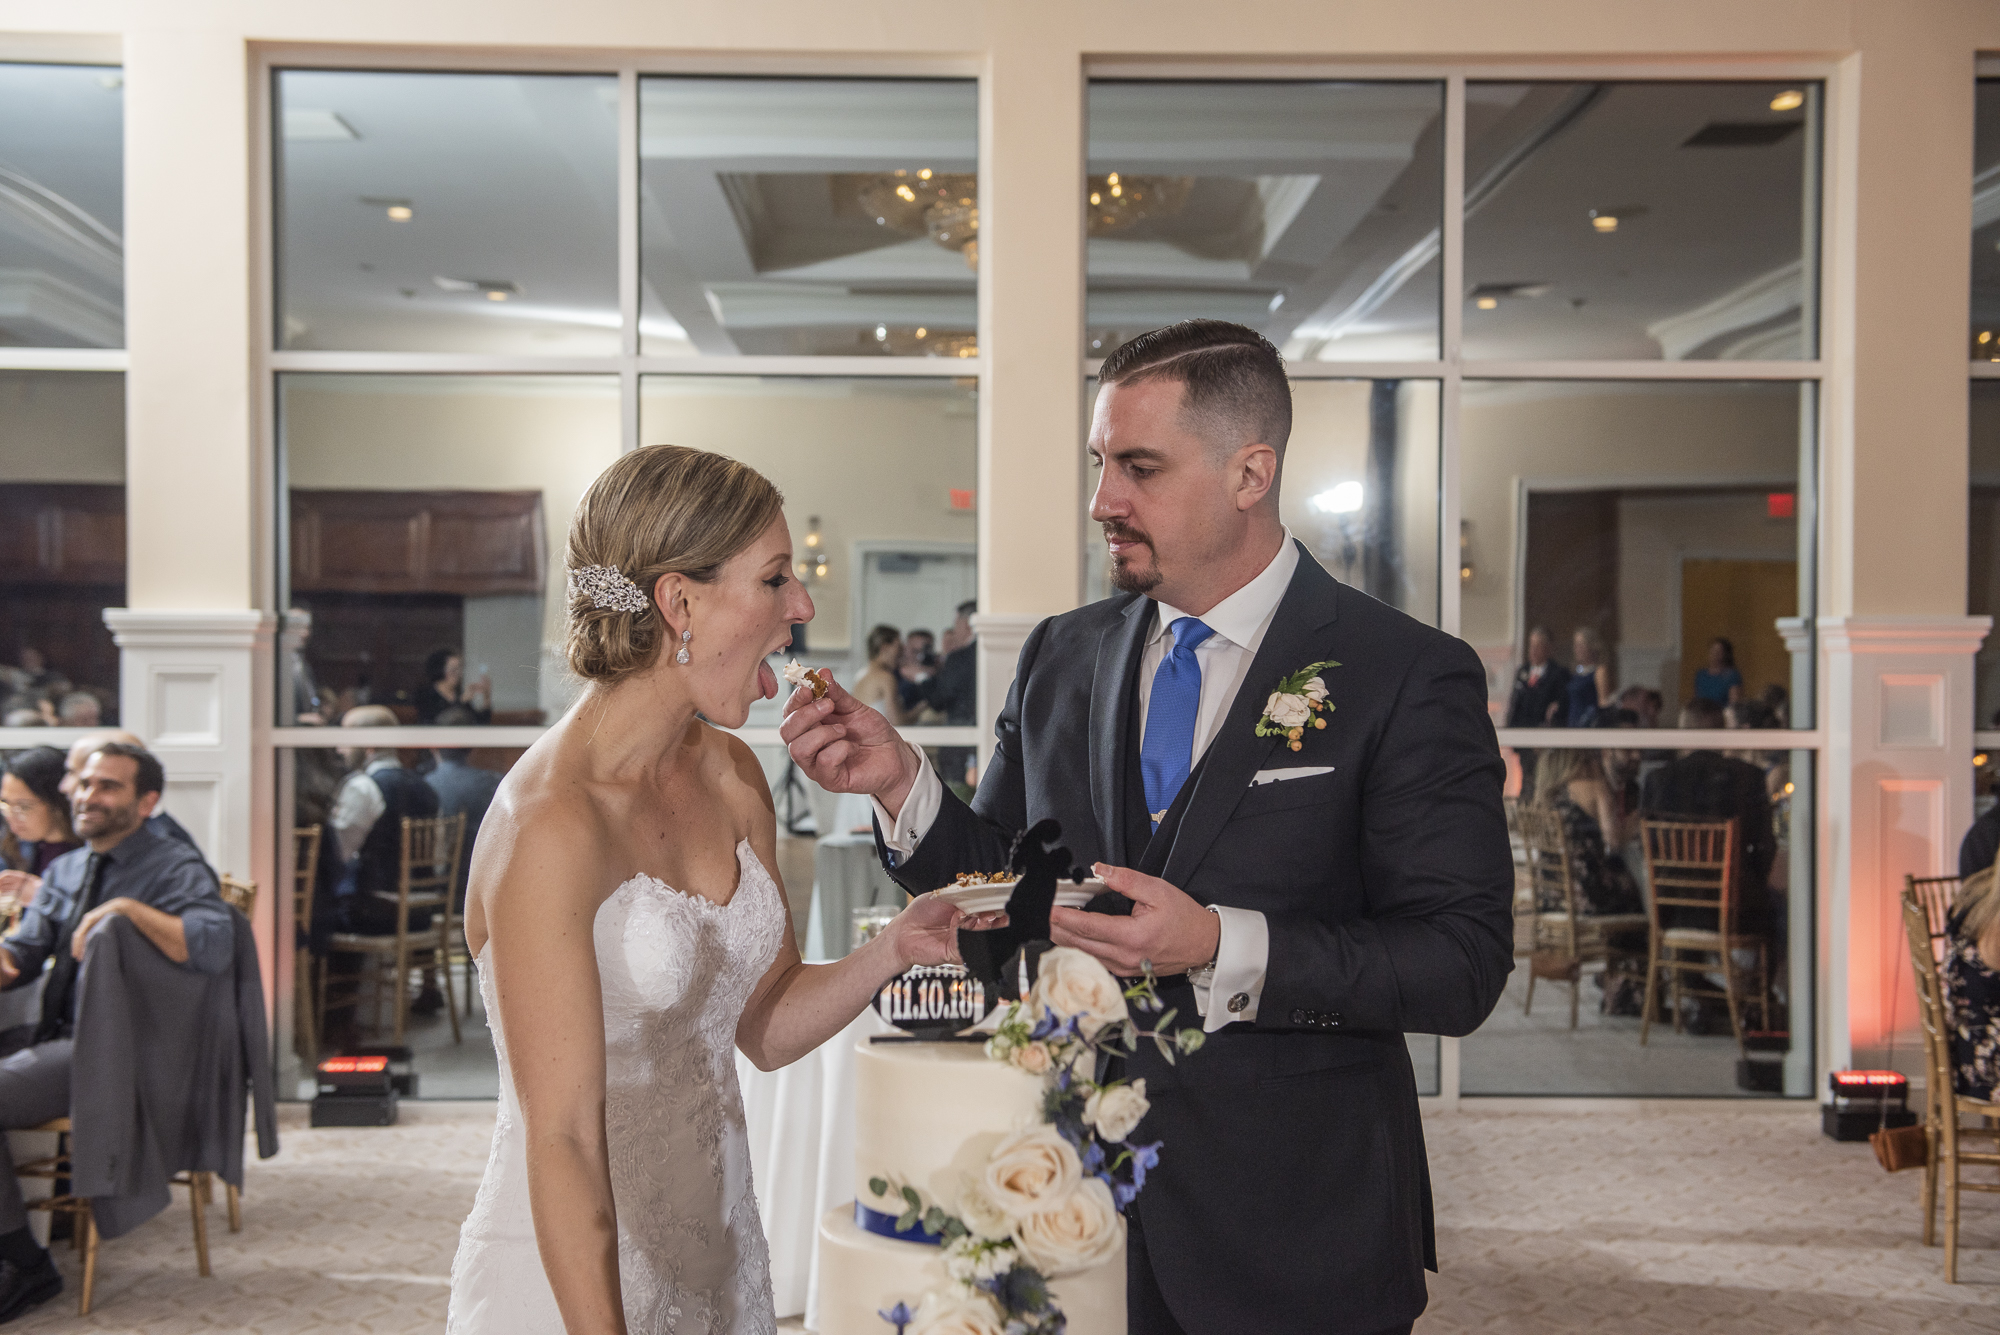 Meghan and Joseph-20181110-4856-RT-2000.jpg